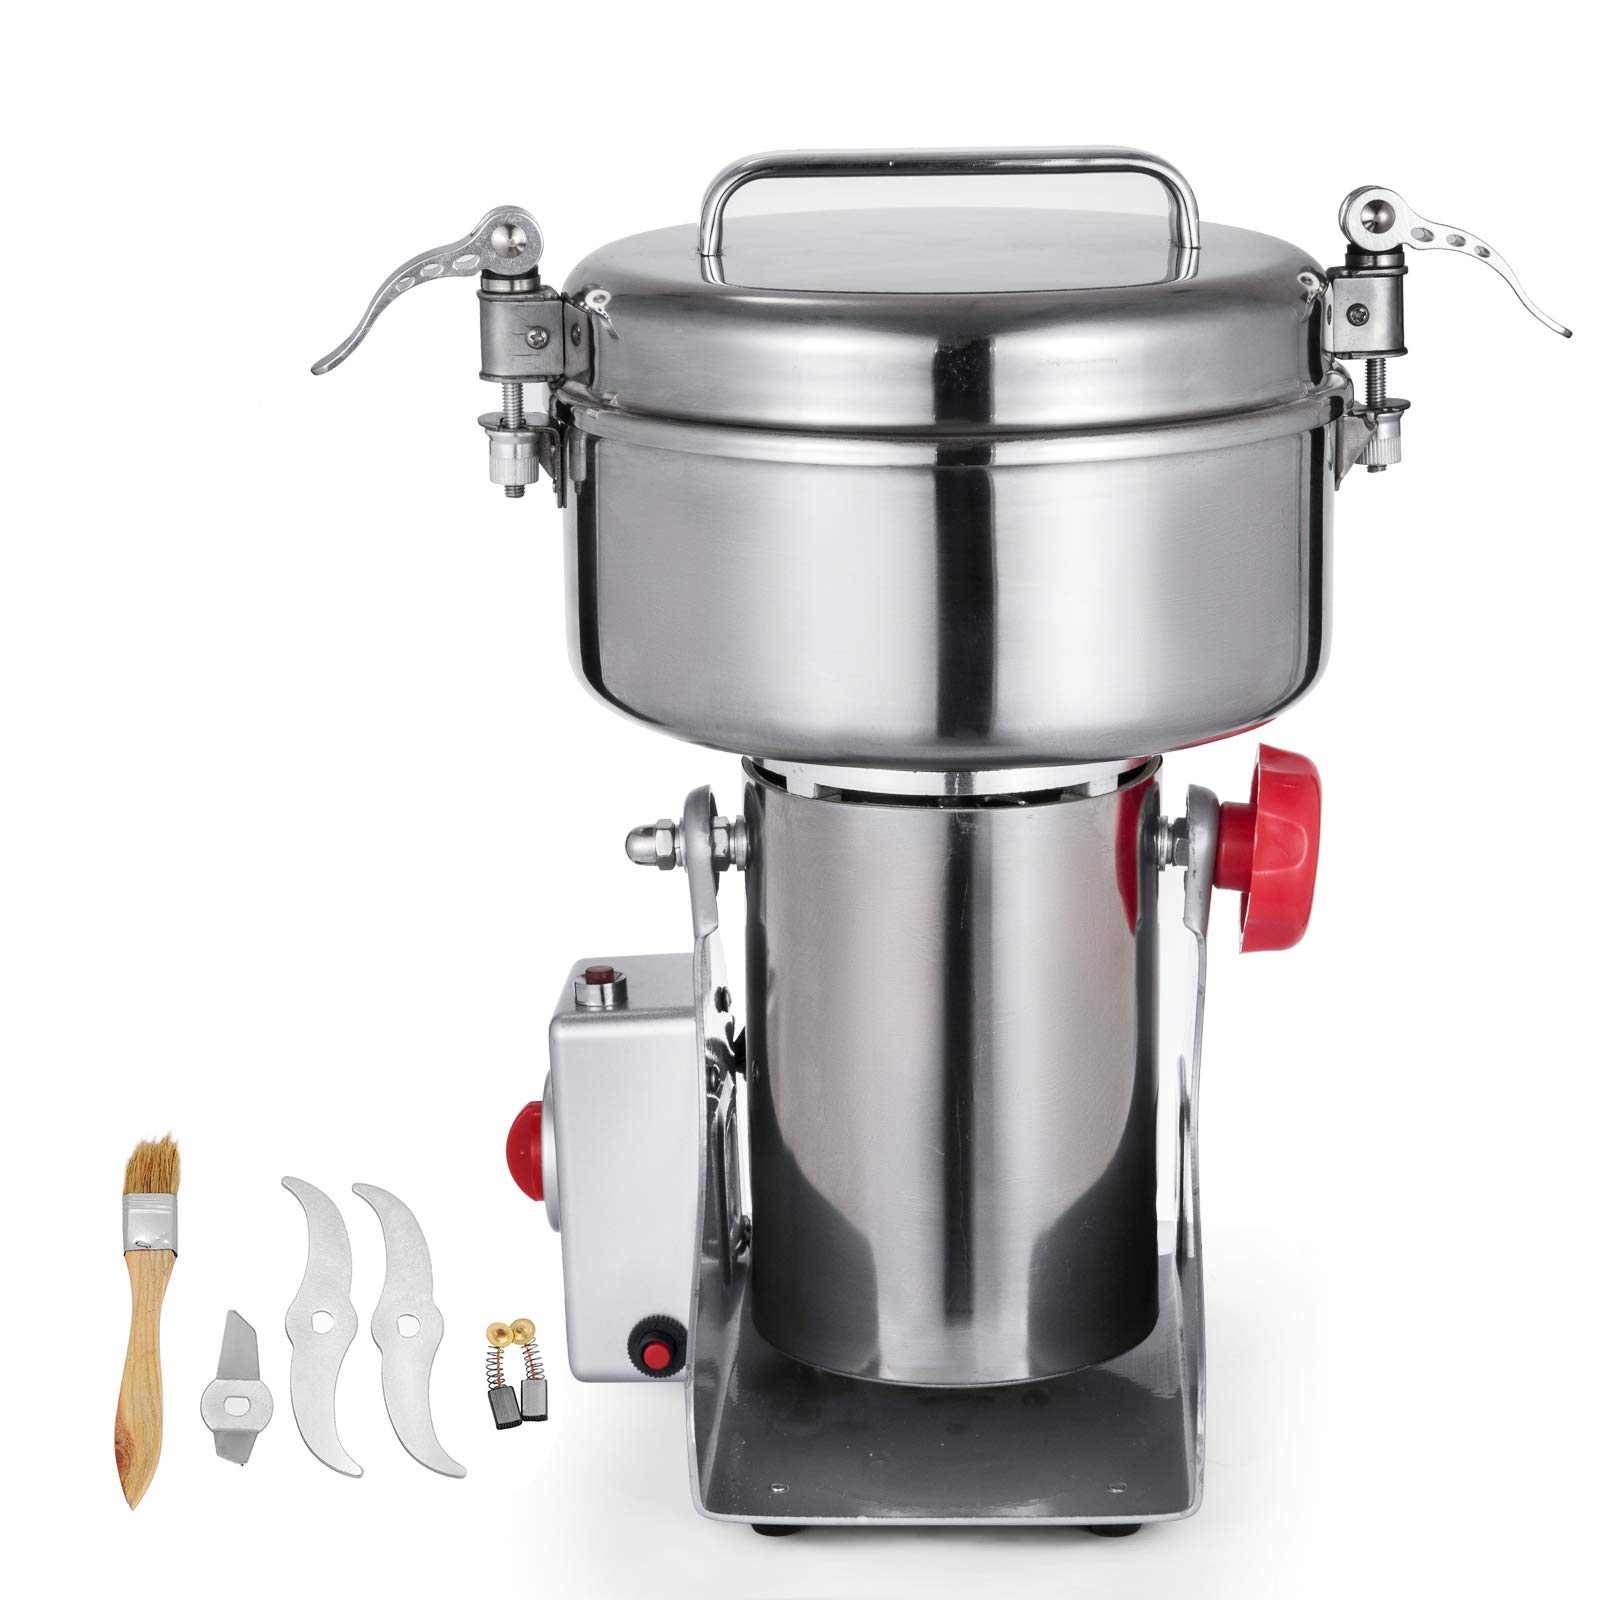 Mophorn Electric Grain Mill Grinder Powder Machine 50-300 Mesh Food Grade Stainless Steel for Kitchen Herb Spice Pepper Coffee (1000g, Electric Grain Grinder)